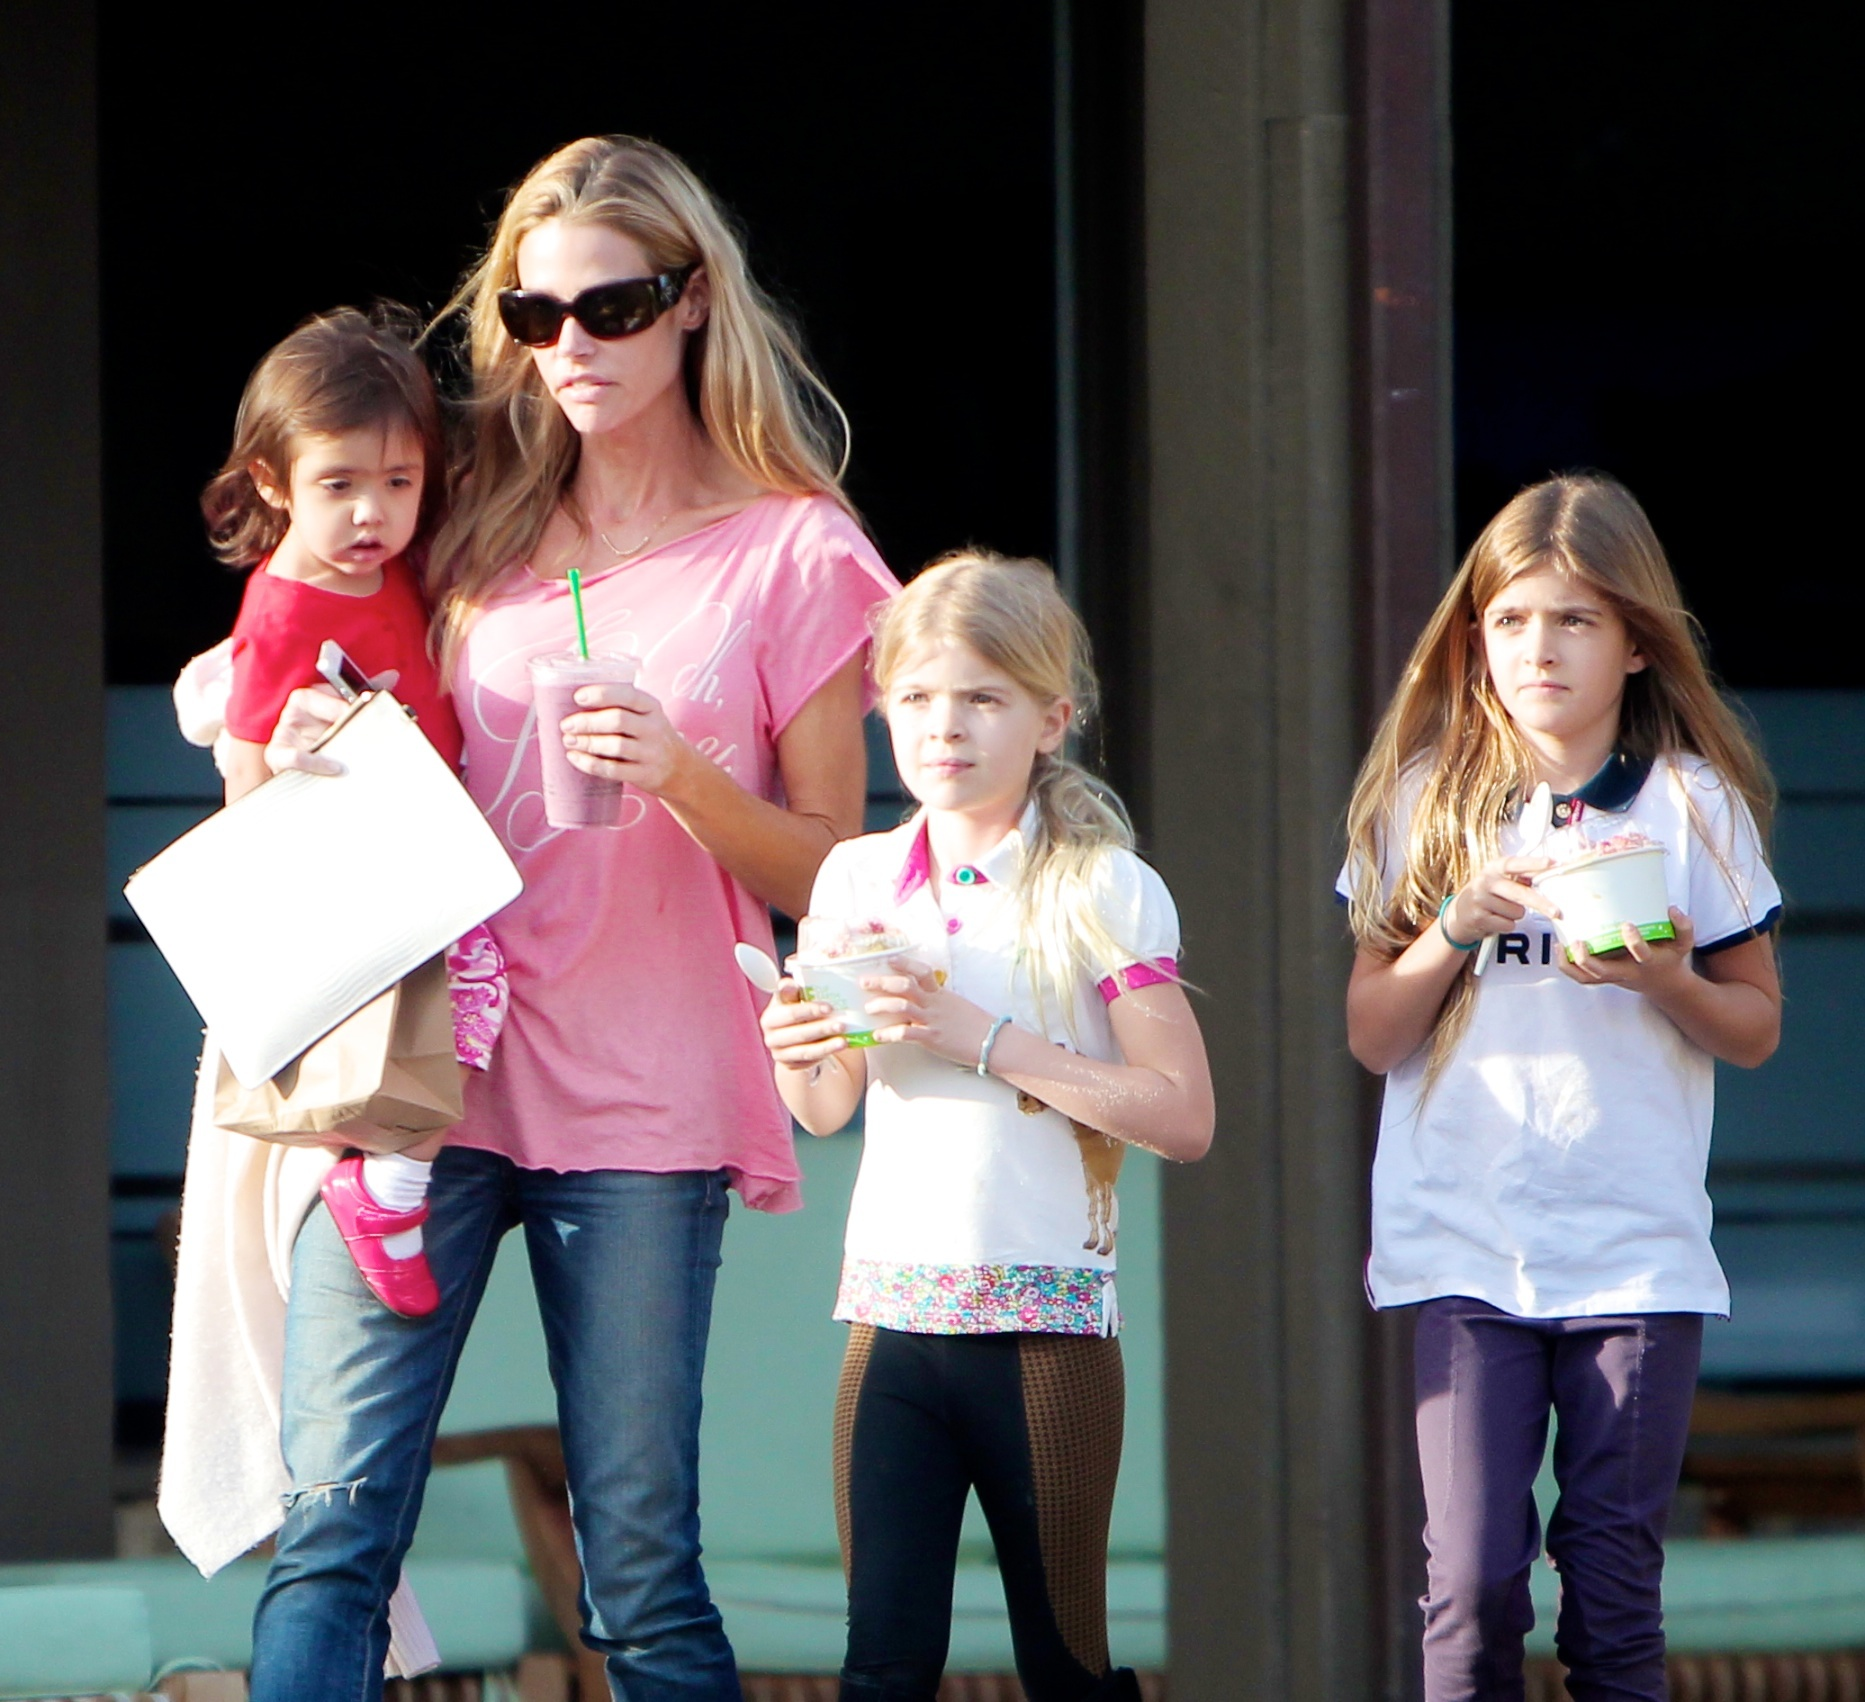 denise richards charlie sheen's twins custody brooke mueller violence